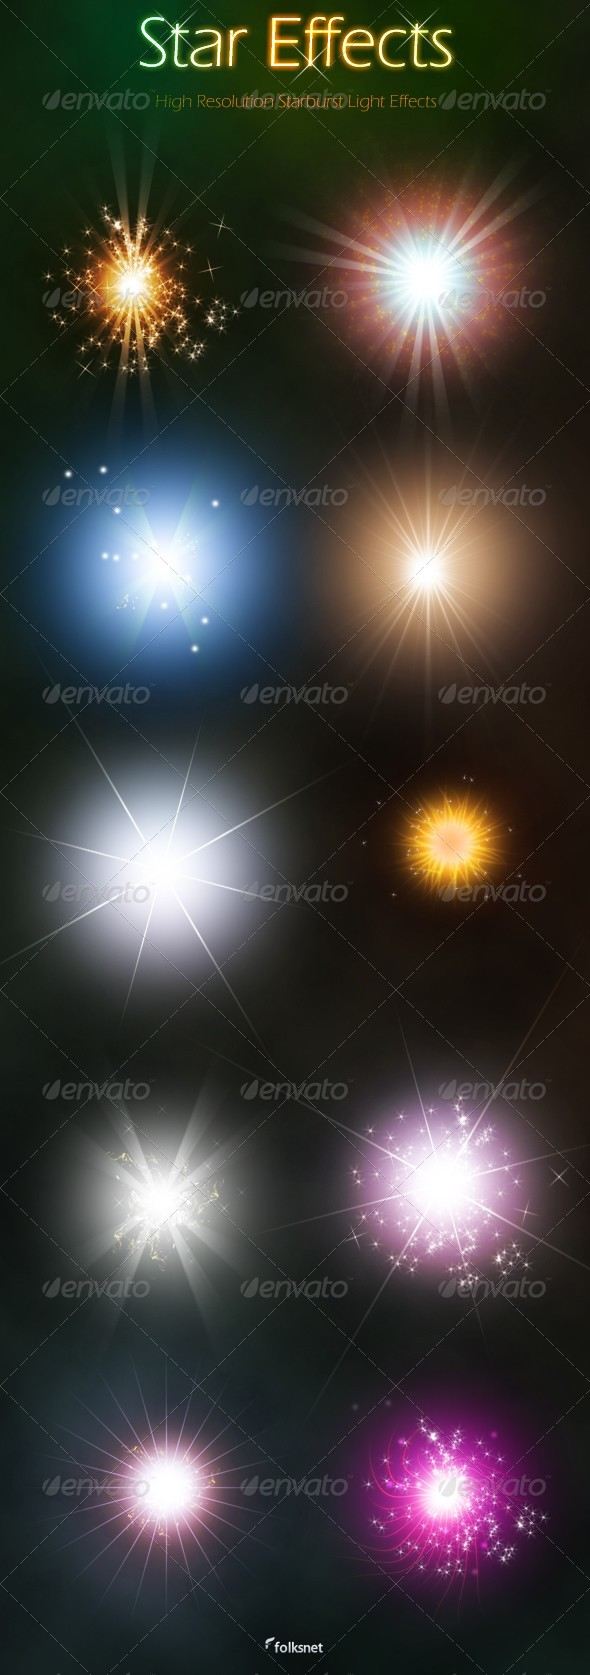 Star Effects - Decorative Graphics